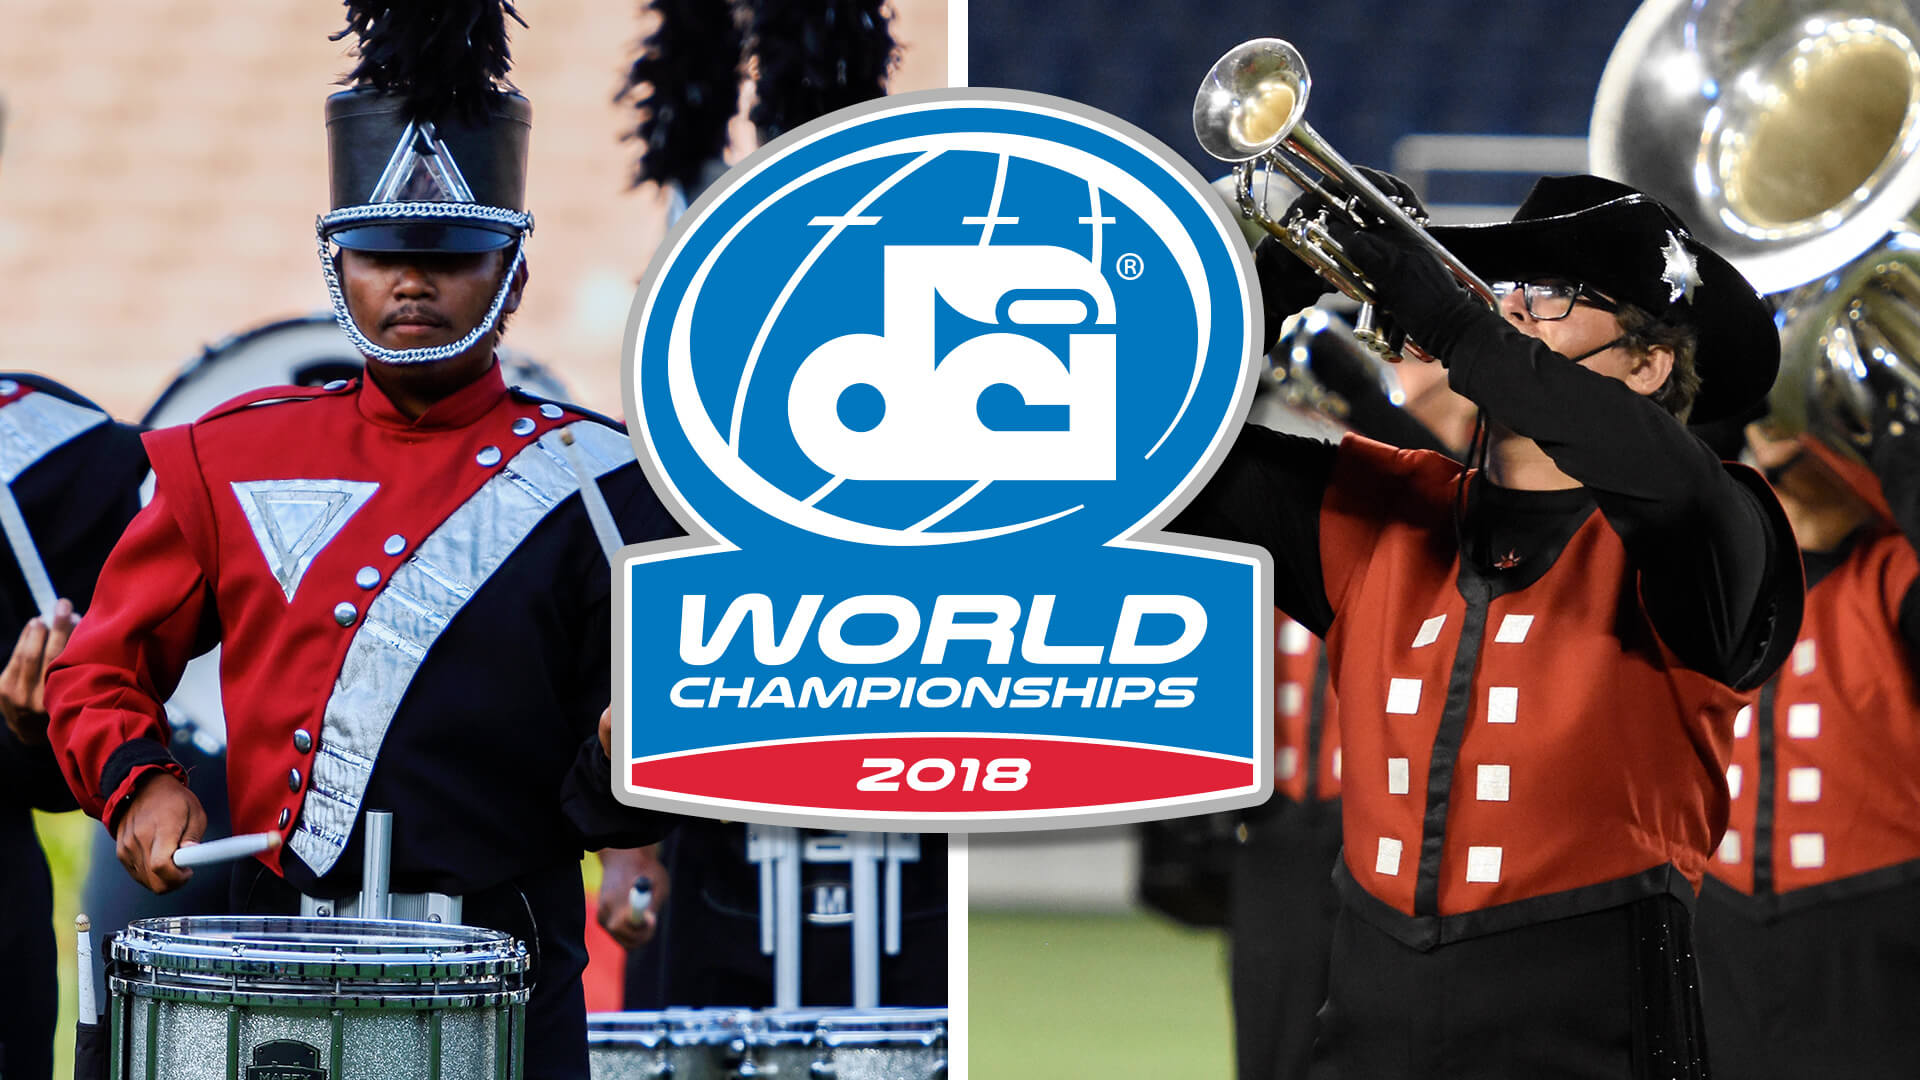 Seasoned OC corps will make first-ever DCI World Championships trips in '18